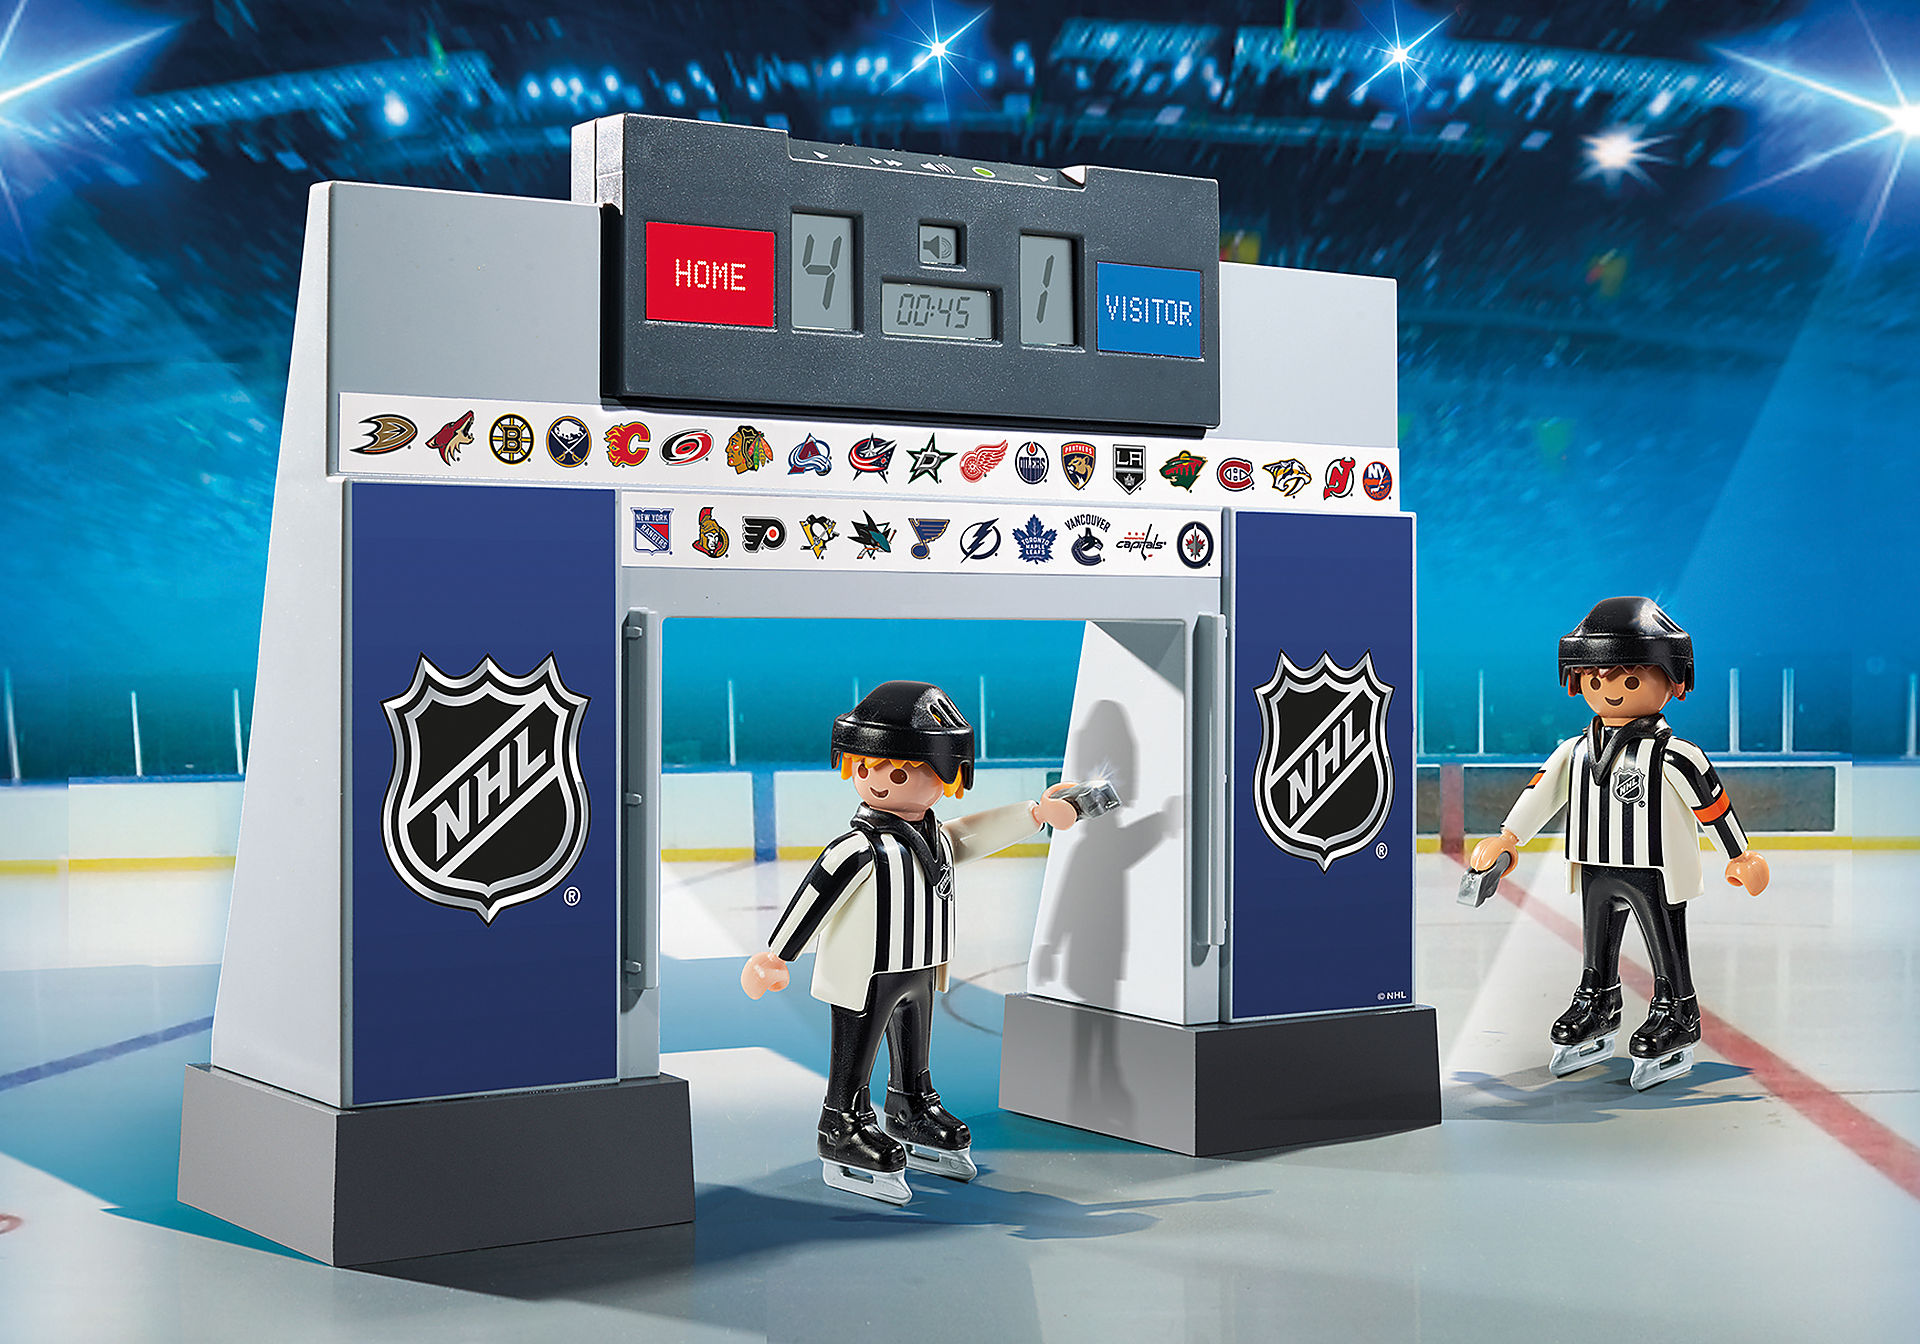 9016 NHL® Score Clock  with 2 Referees zoom image1